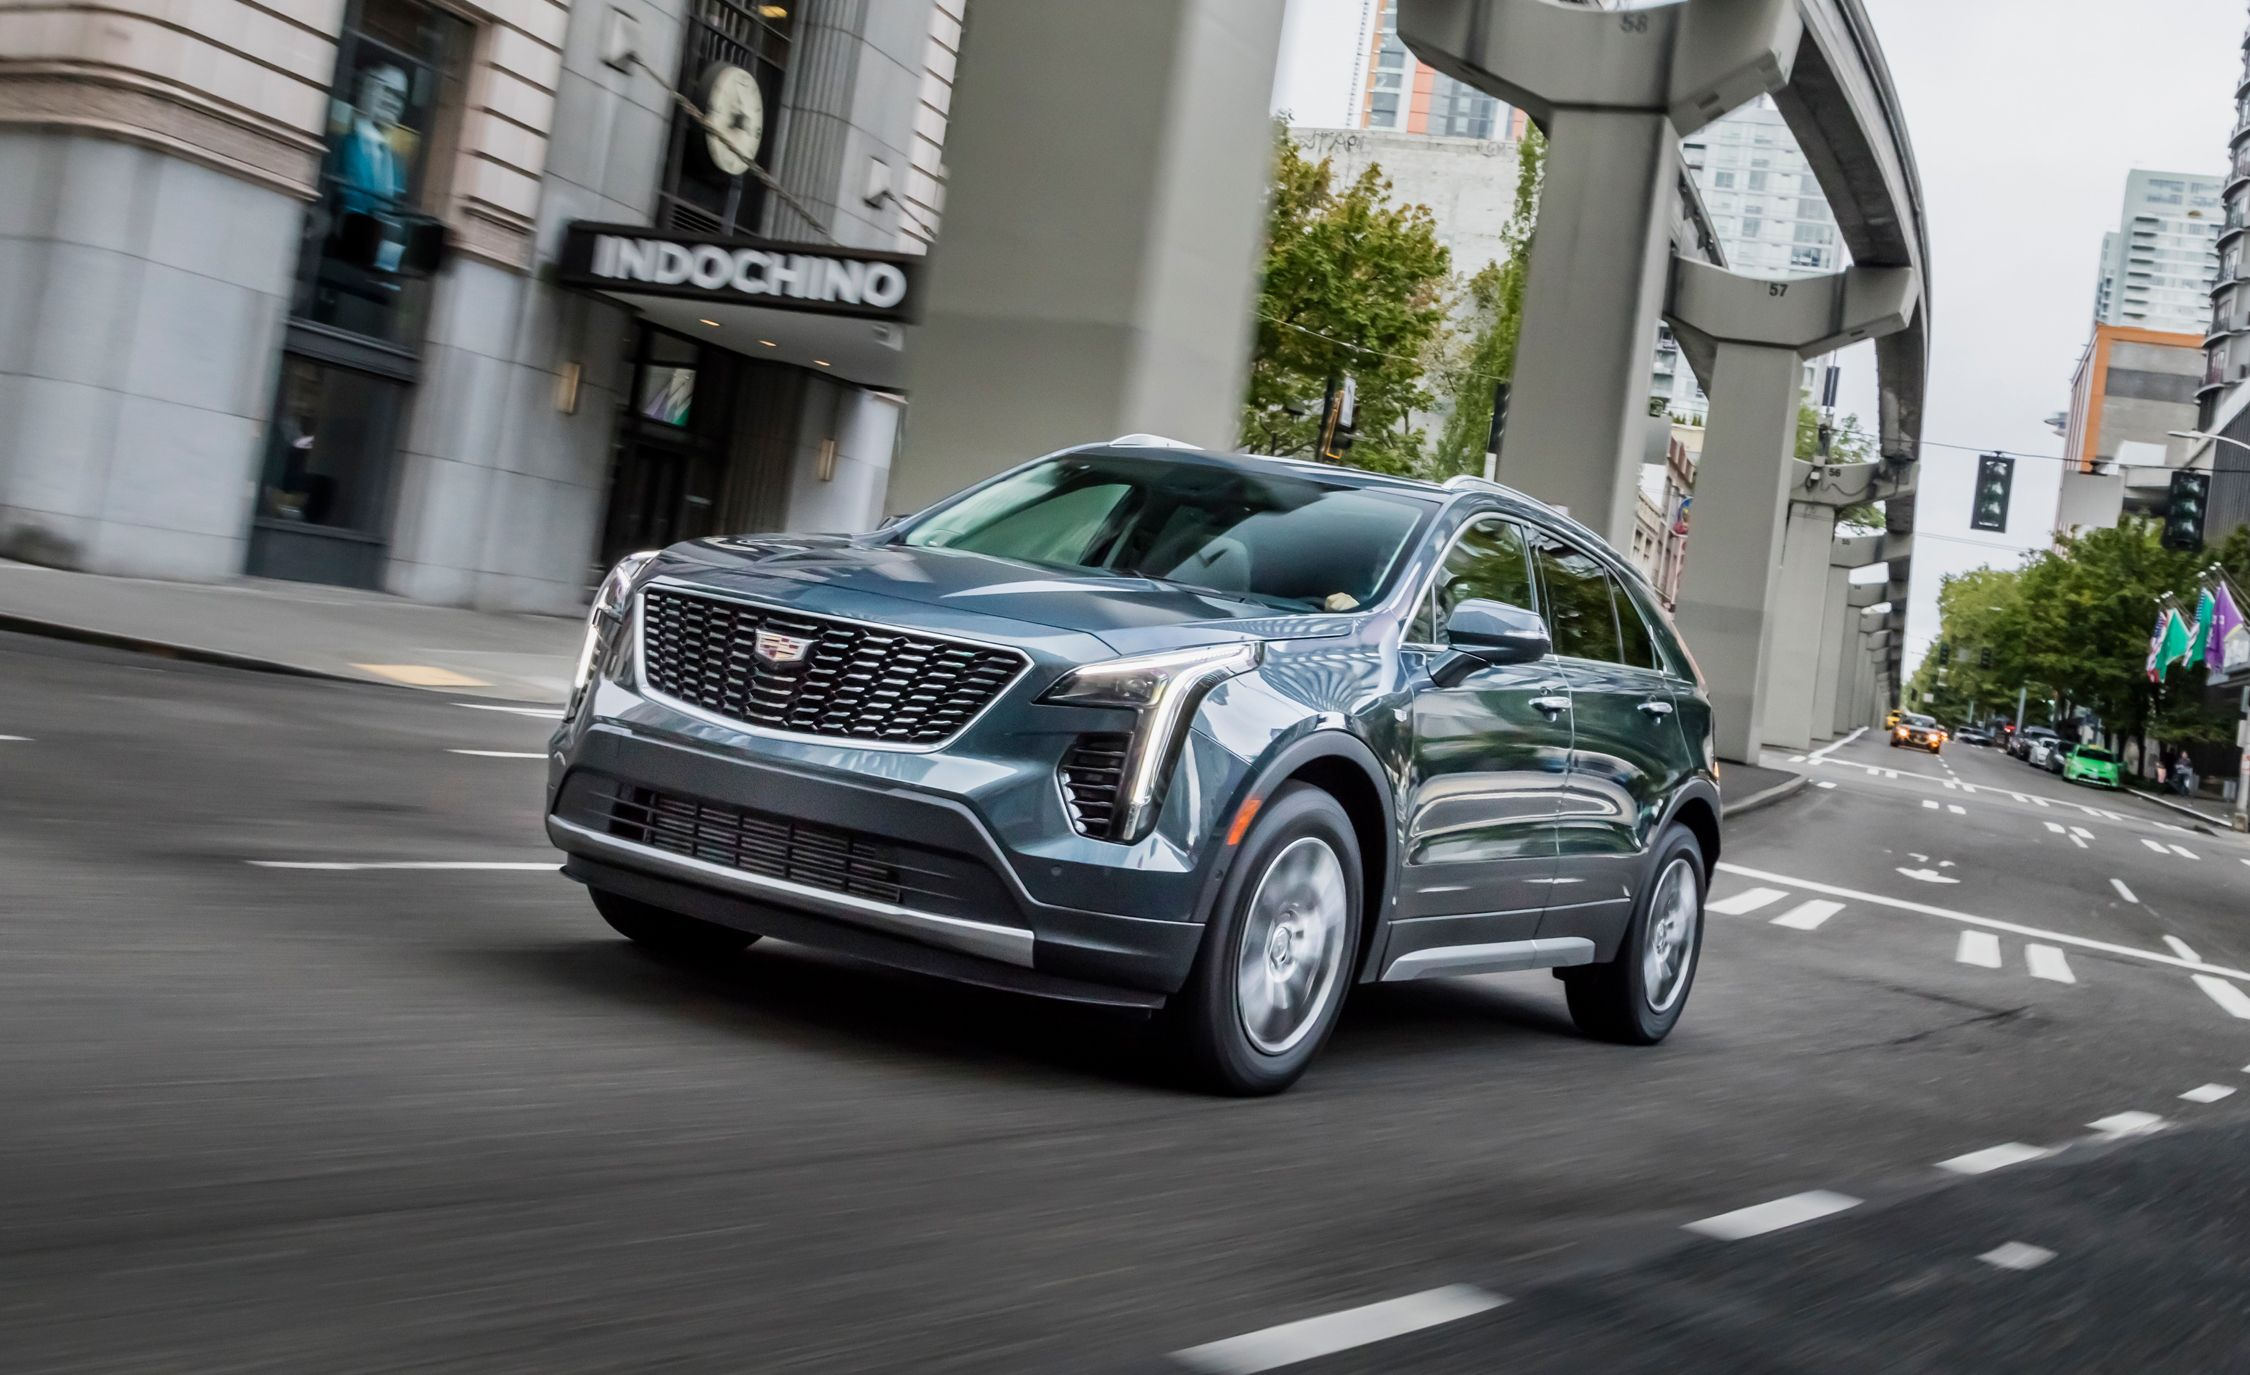 2019 Cadillac Xt4 Reviews Cadillac Xt4 Price Photos And Specs